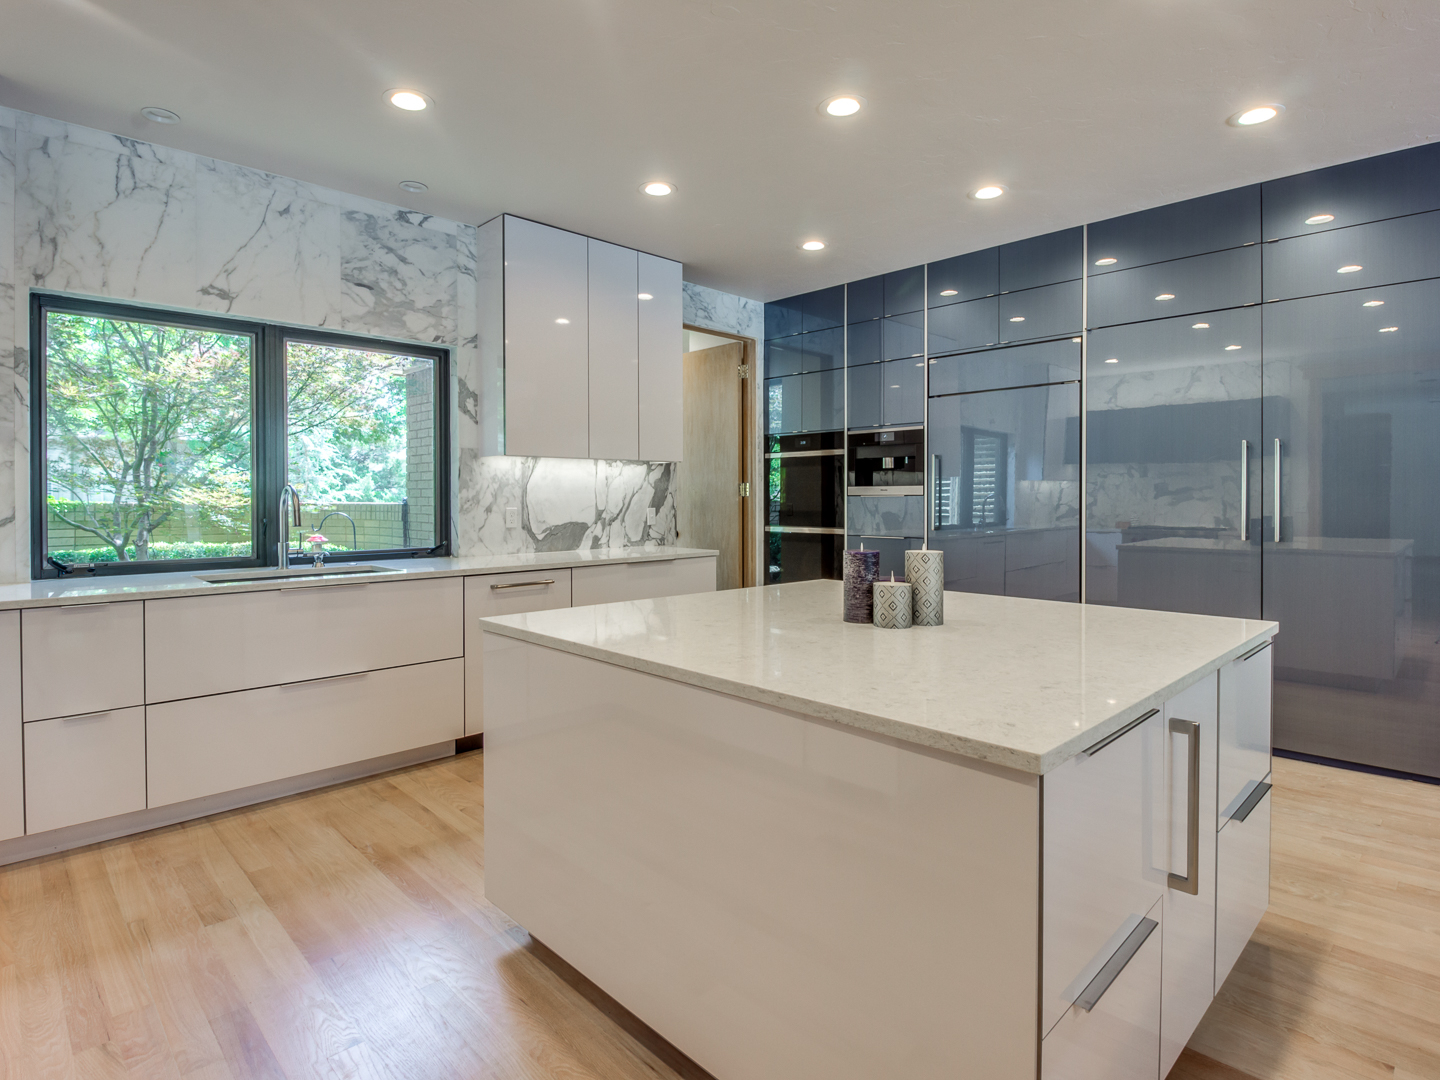 midmoderndesign kitchen remodel okc JASON GRIFE CO OWNER AND BUSINESS MANAGER Jason comes to MIDMODERNdesign from a very successful career in non profit management